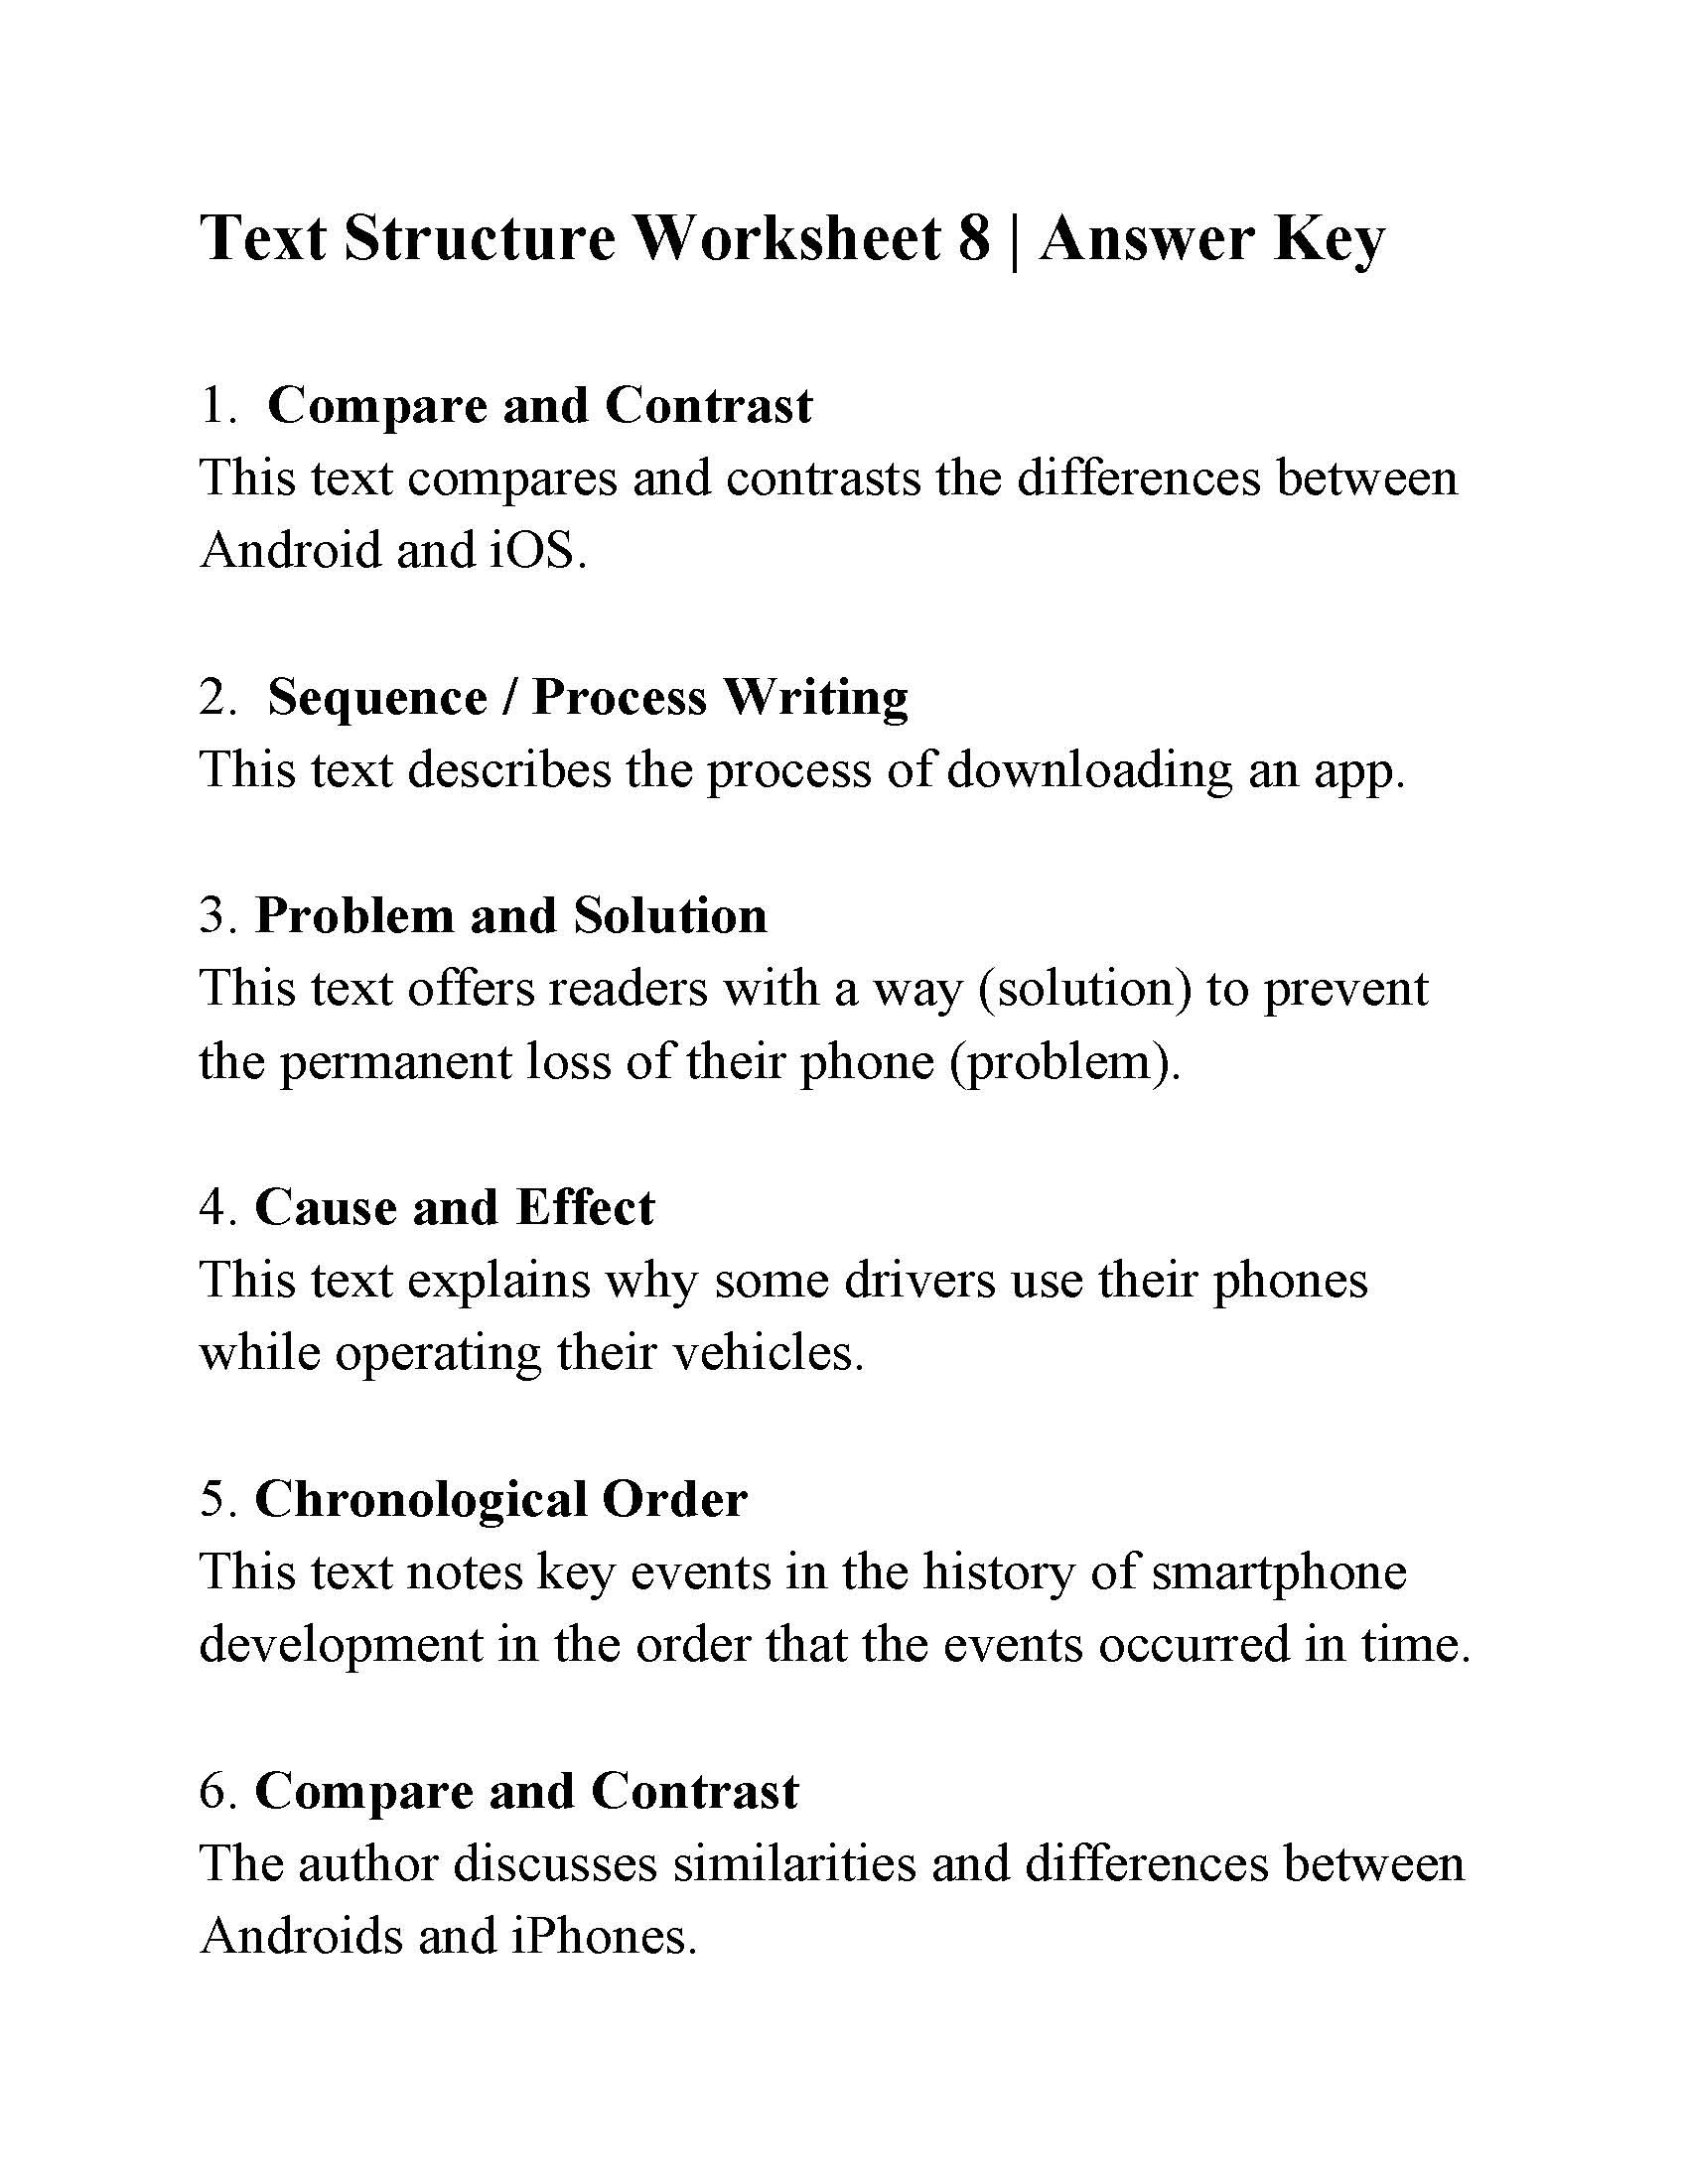 Text Structure 5th Grade Worksheets Text Structure Worksheet Answers Ereading Worksheets Year